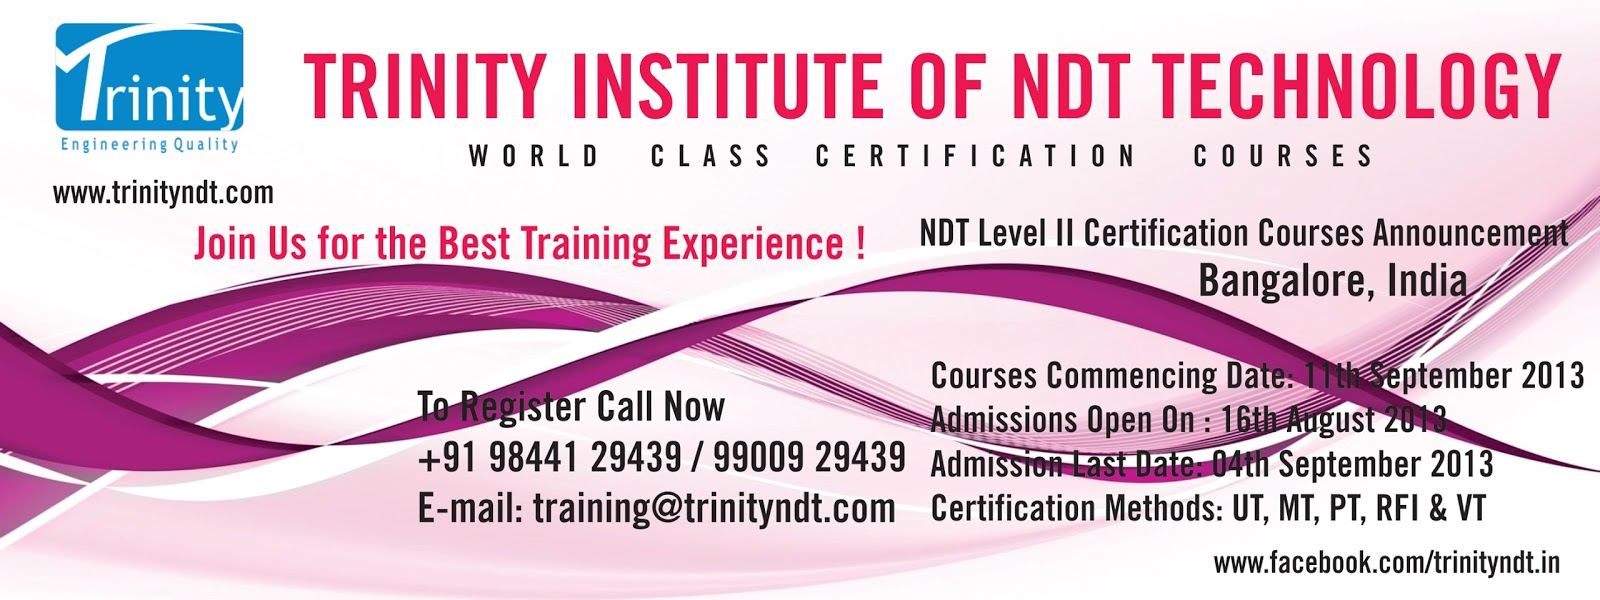 short ndt certification courses for mechanical engineers 11th september 2013 at trinity ndt international training centre bangalore india